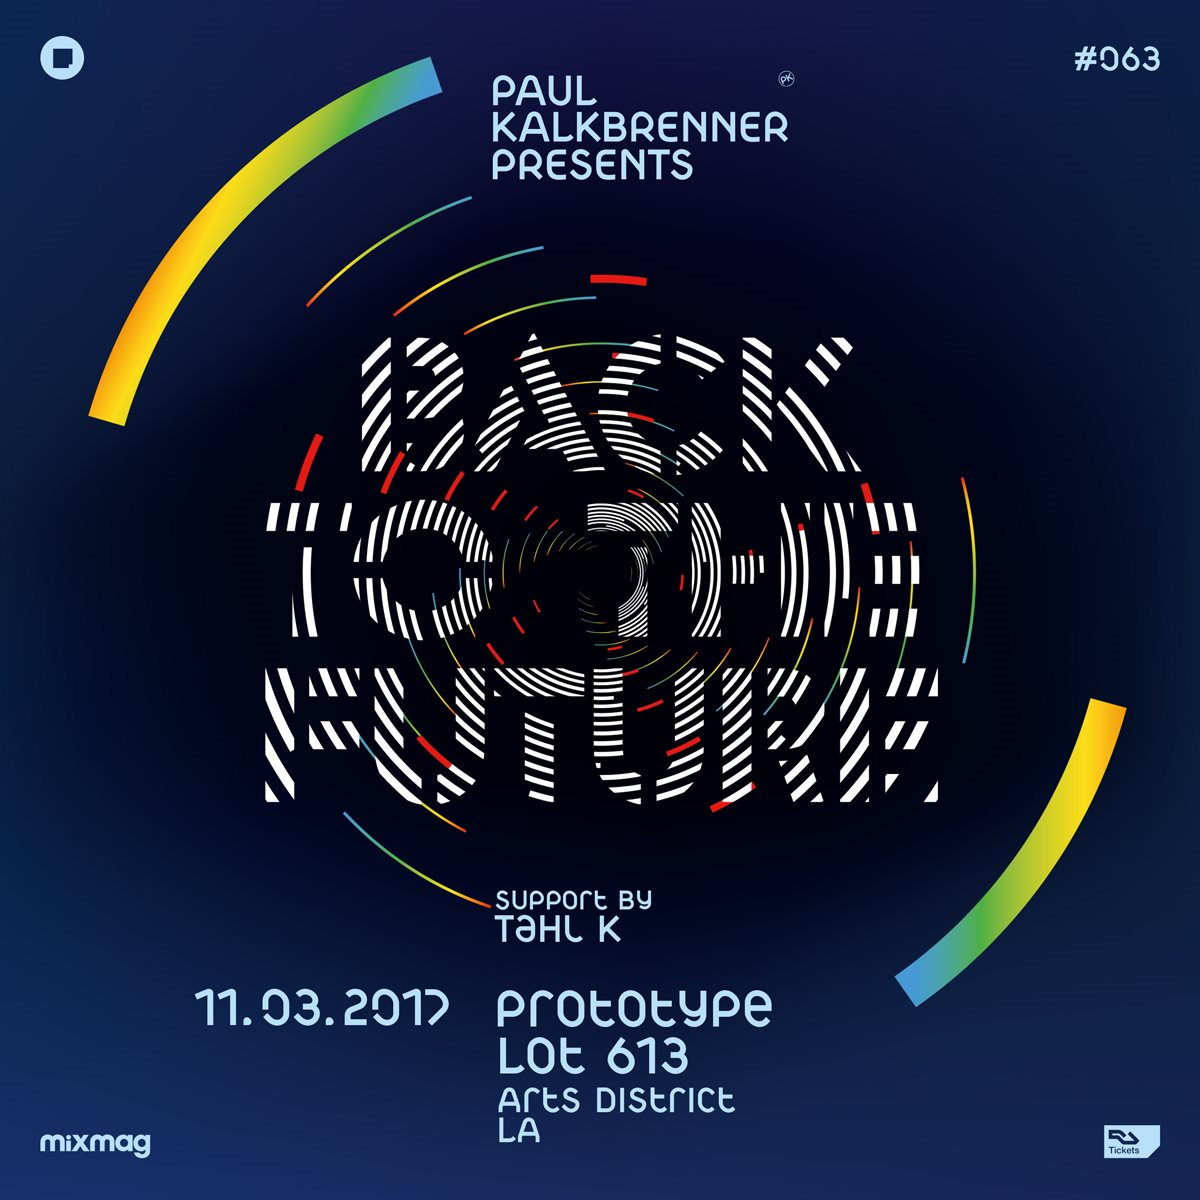 Paul Kalkbrenner - Live At Prototype 063 presents Back To The Future, Lot 363 (Los Angeles) [HD1080p] - 03-Nov-2017